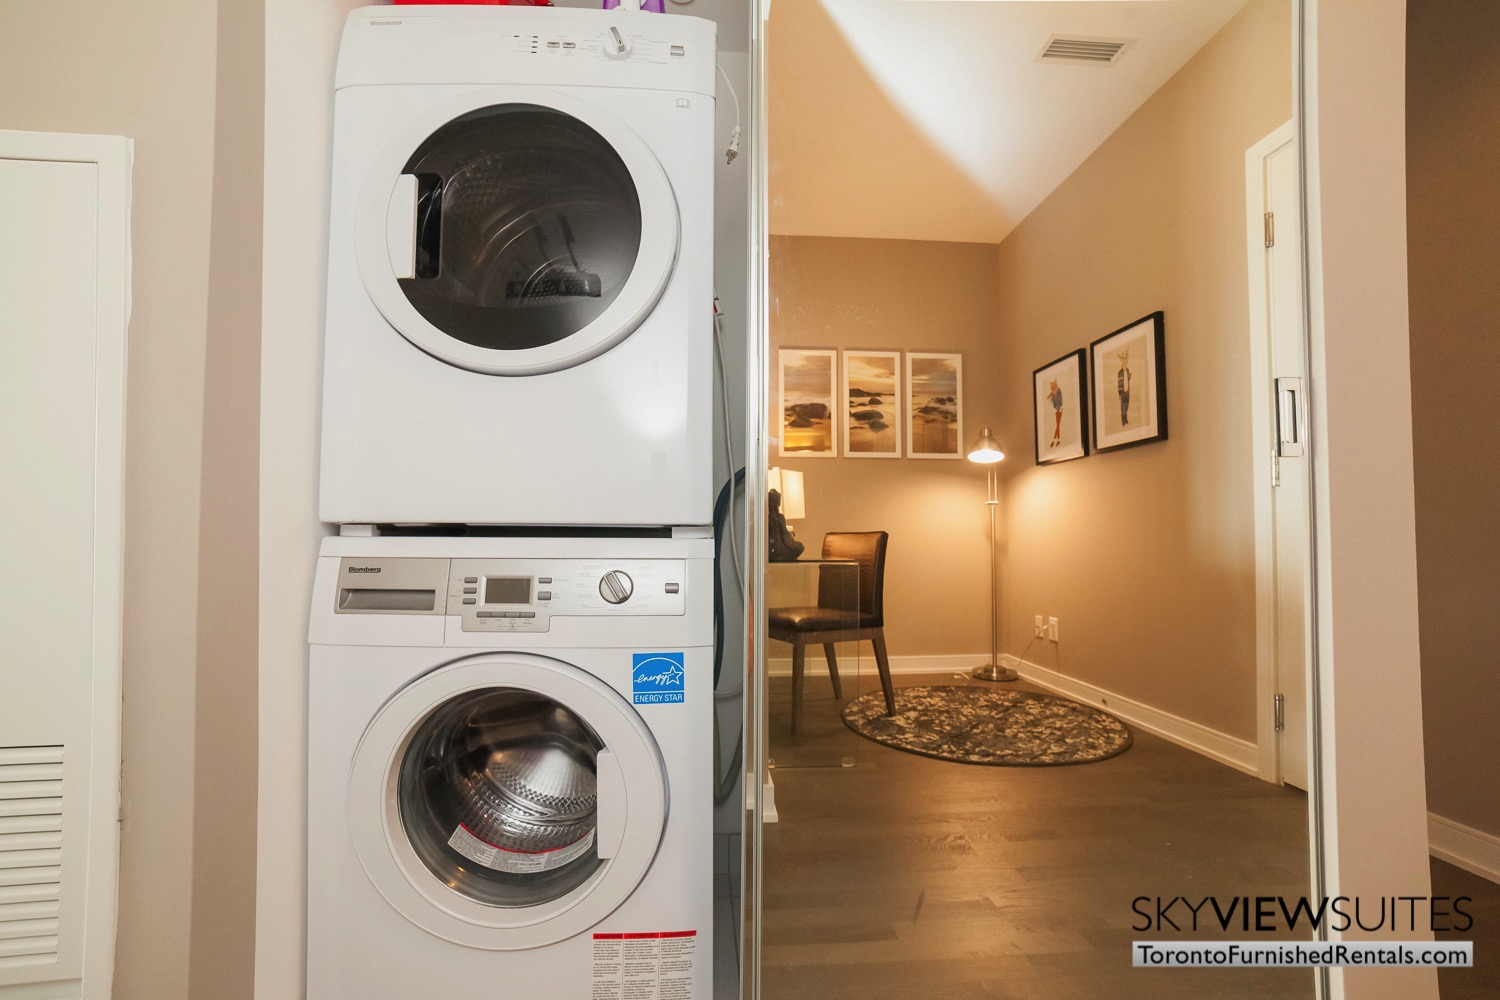 furnished apartments toronto Varsity washer dryer